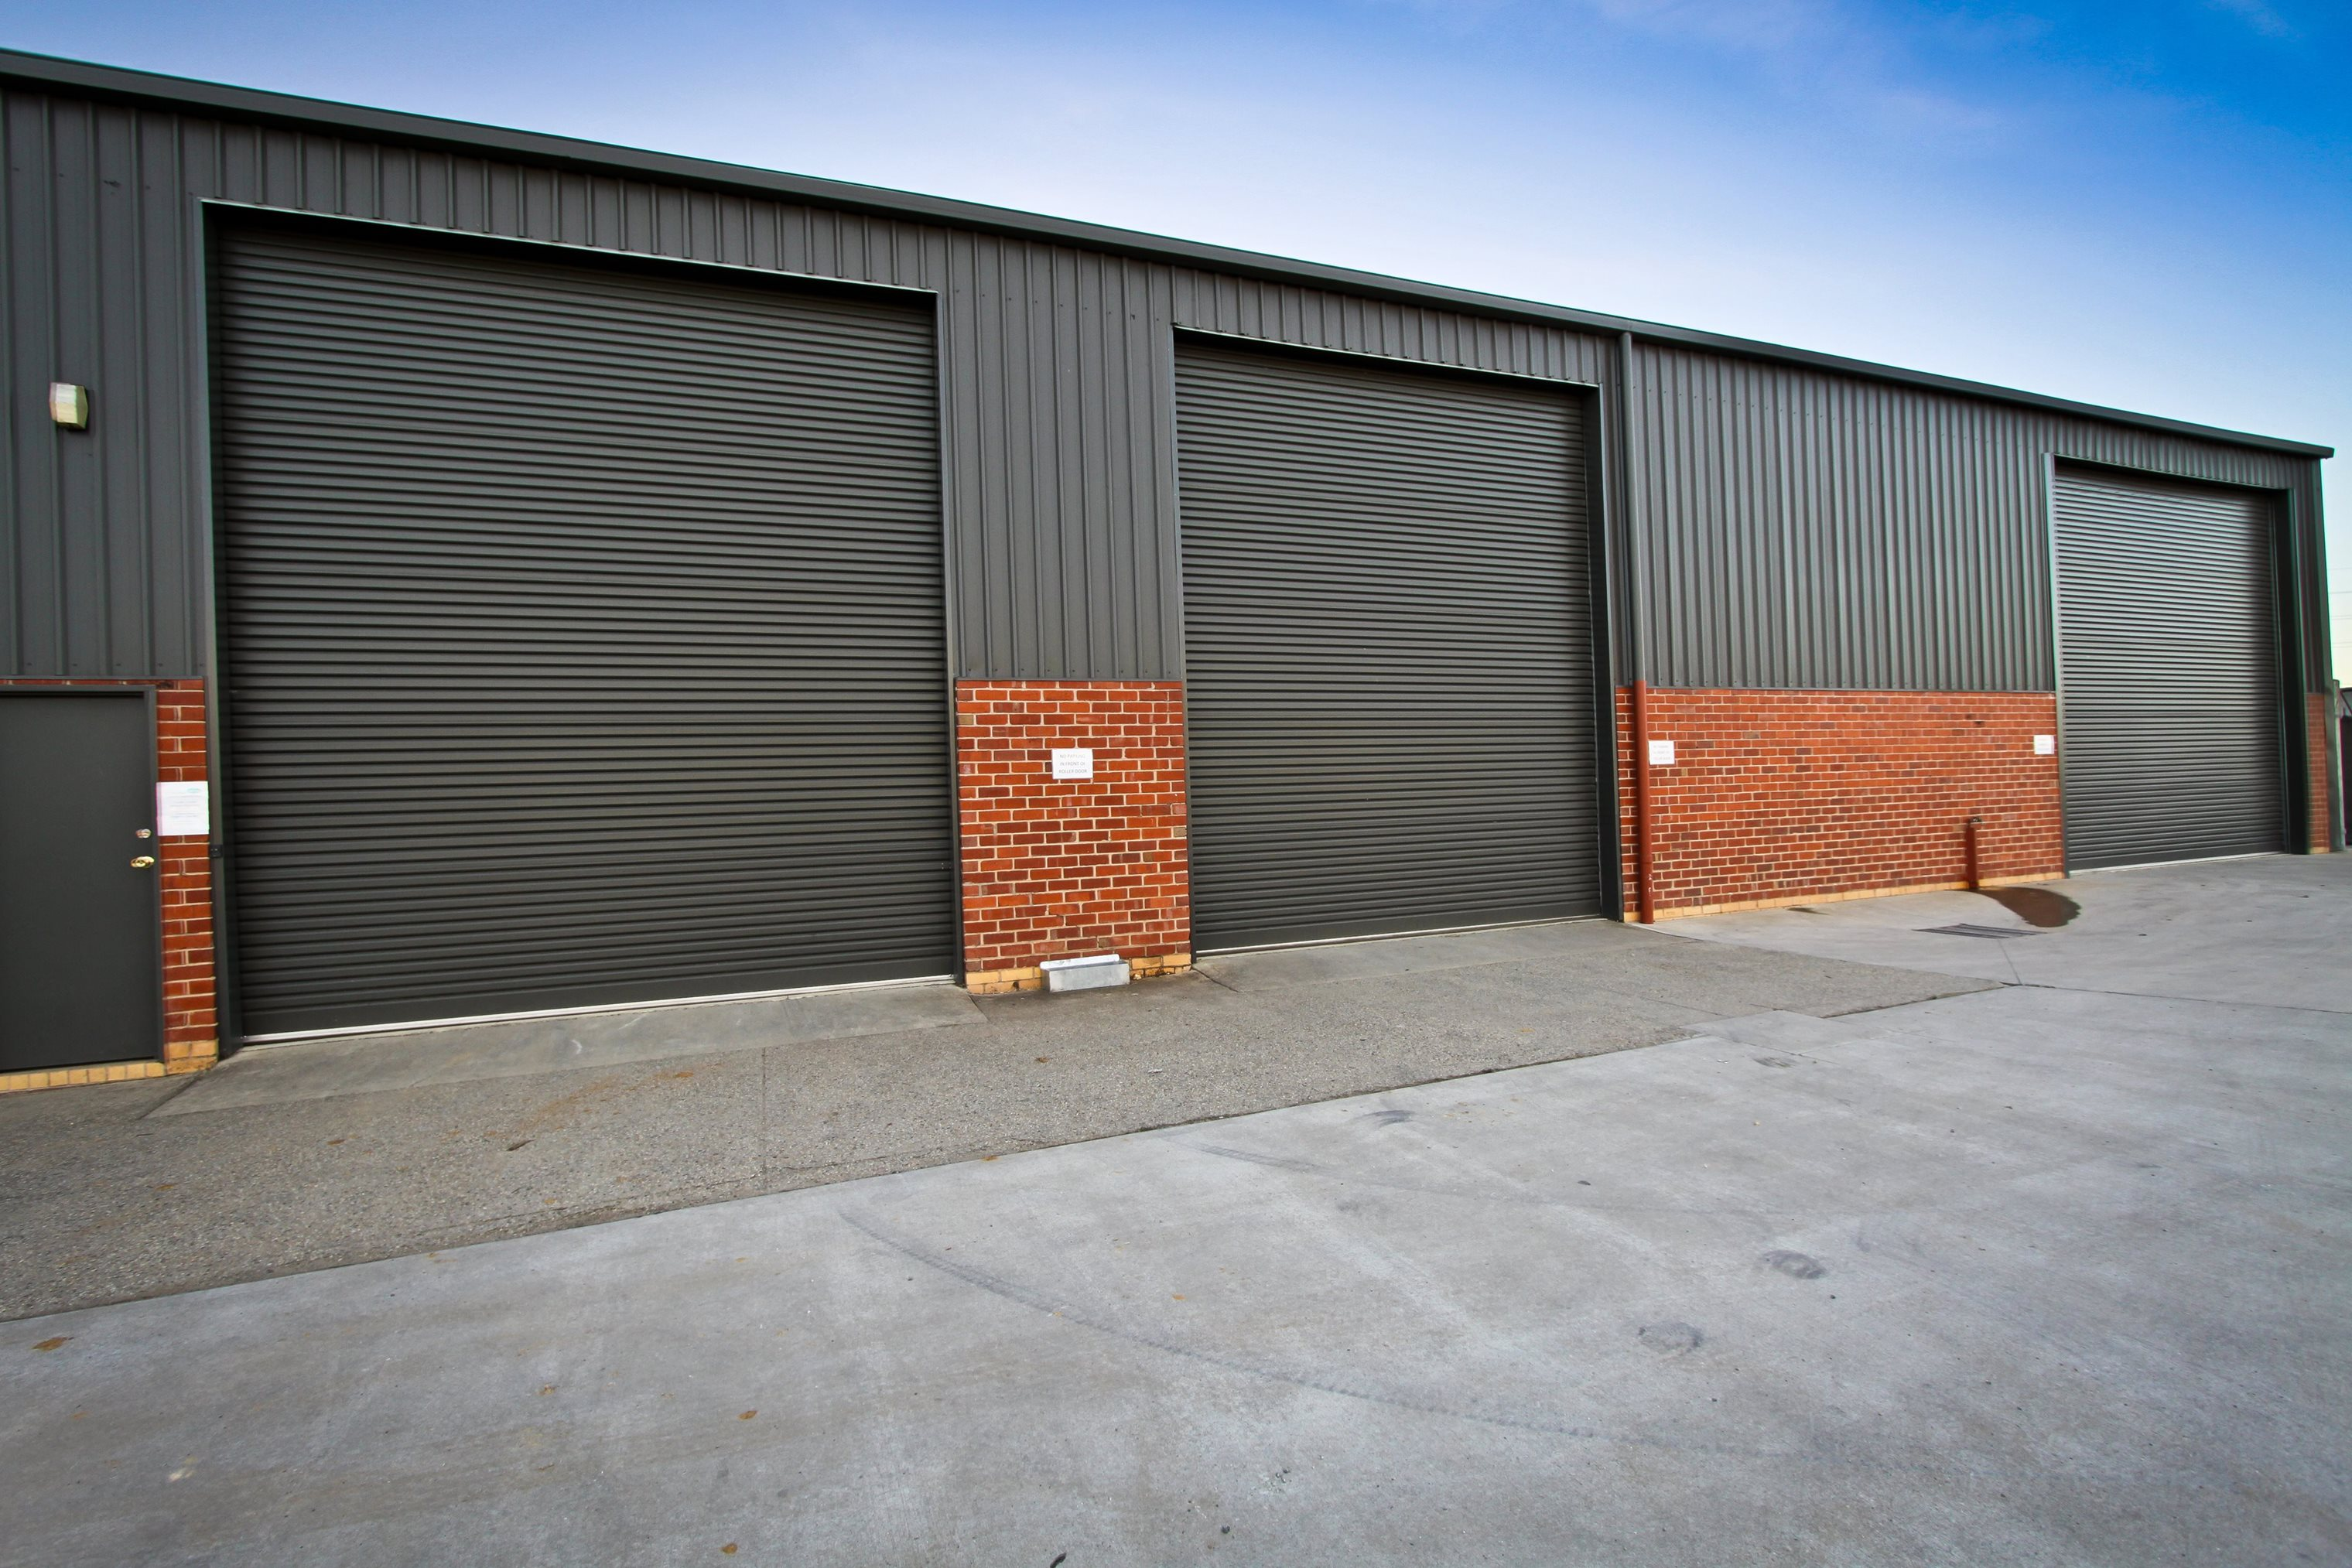 ltd industrial home decorating garage stunning epic for birmingham small inspiration door doors